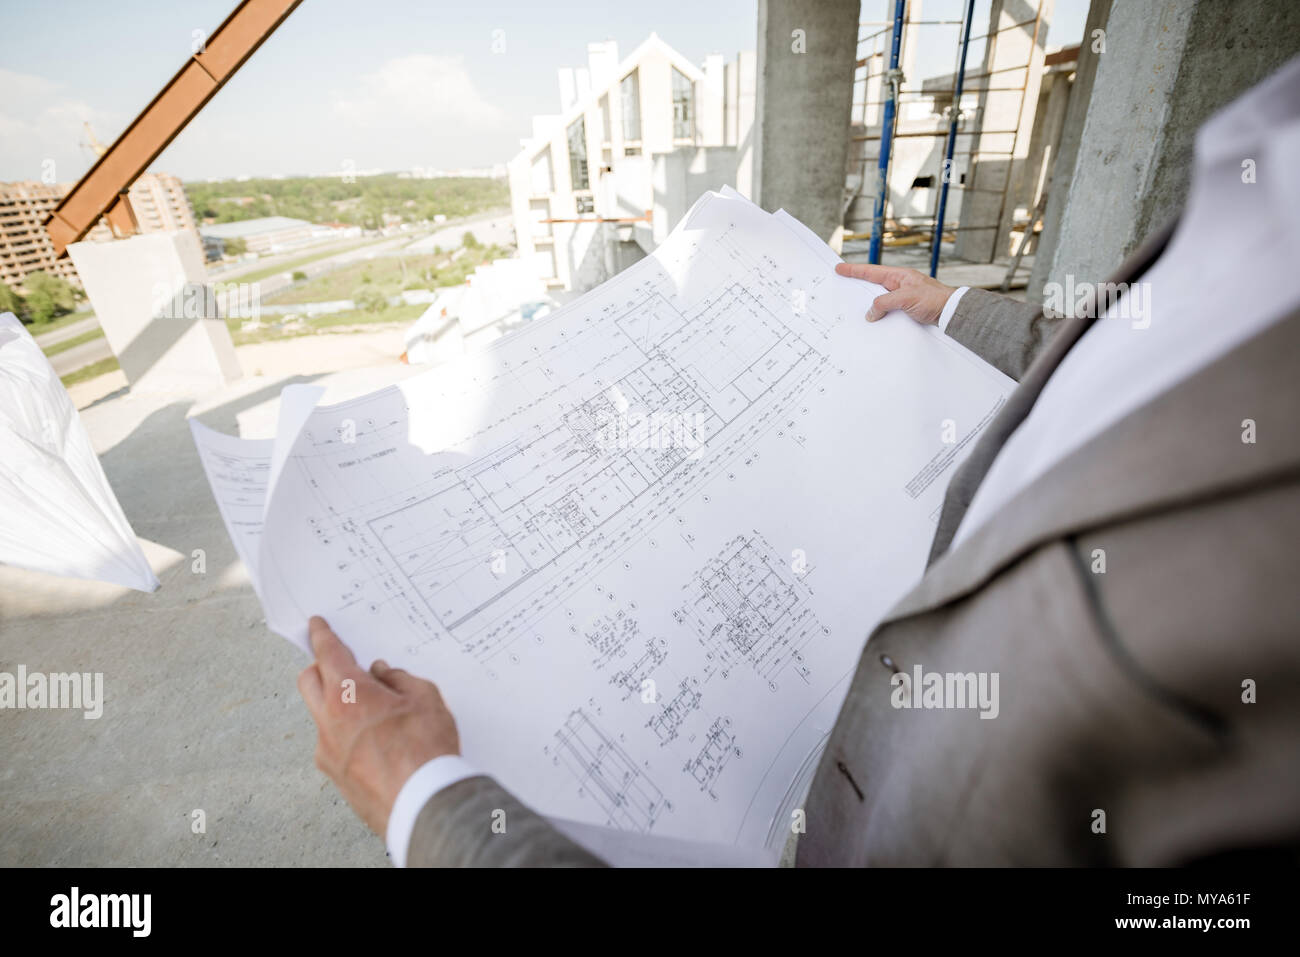 Holding house plan drawings on the structure - Stock Image